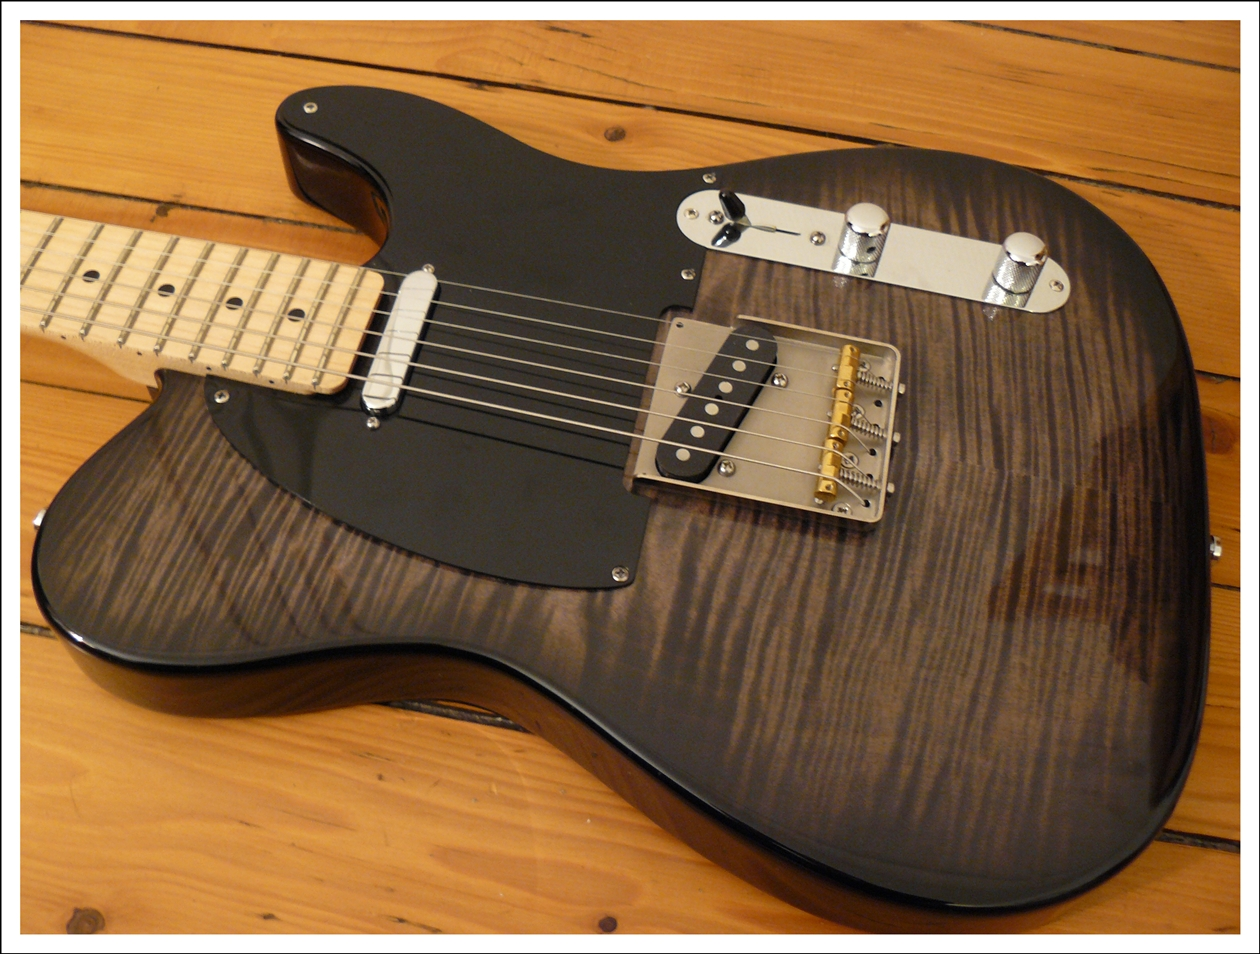 Warmoth Telecaster image (#329854) - Audiofanzine